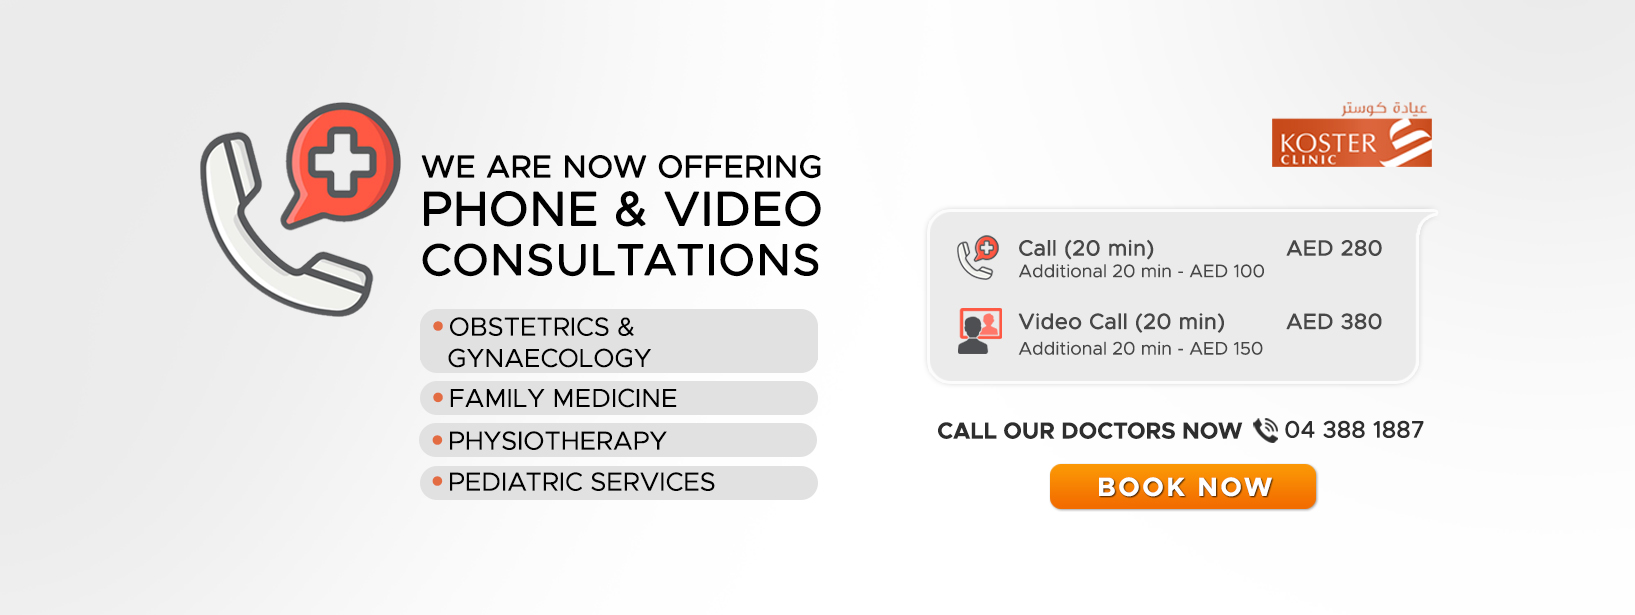 western medical care, phone video consultation